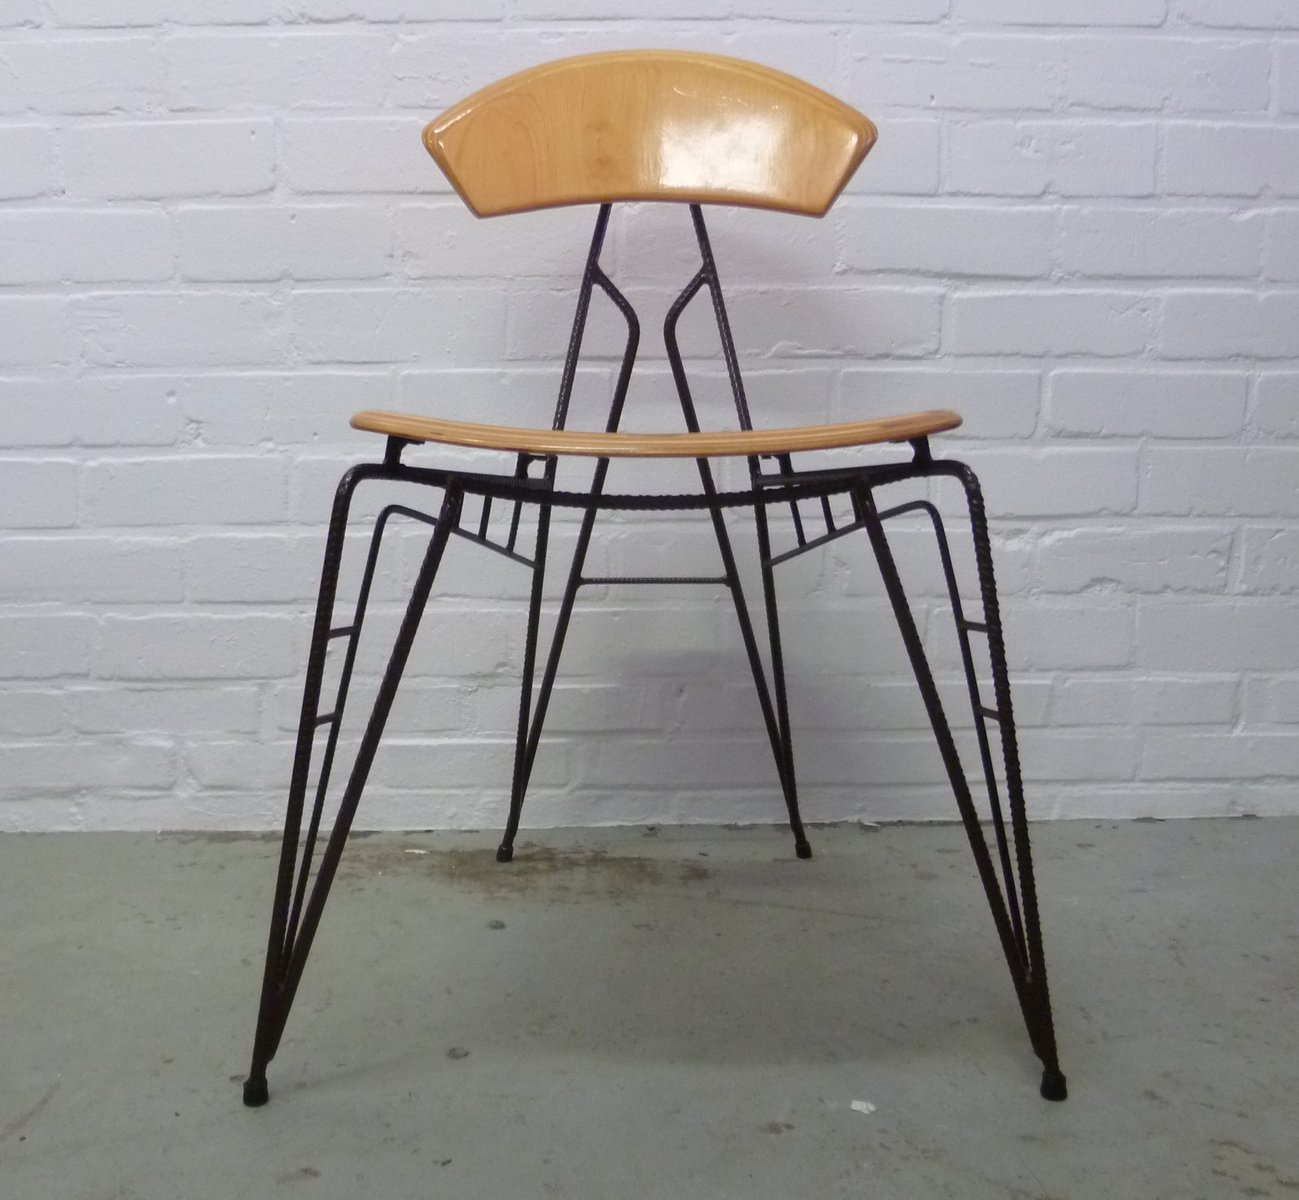 Industrial Chair by Jan Stigt for sale at Pamono